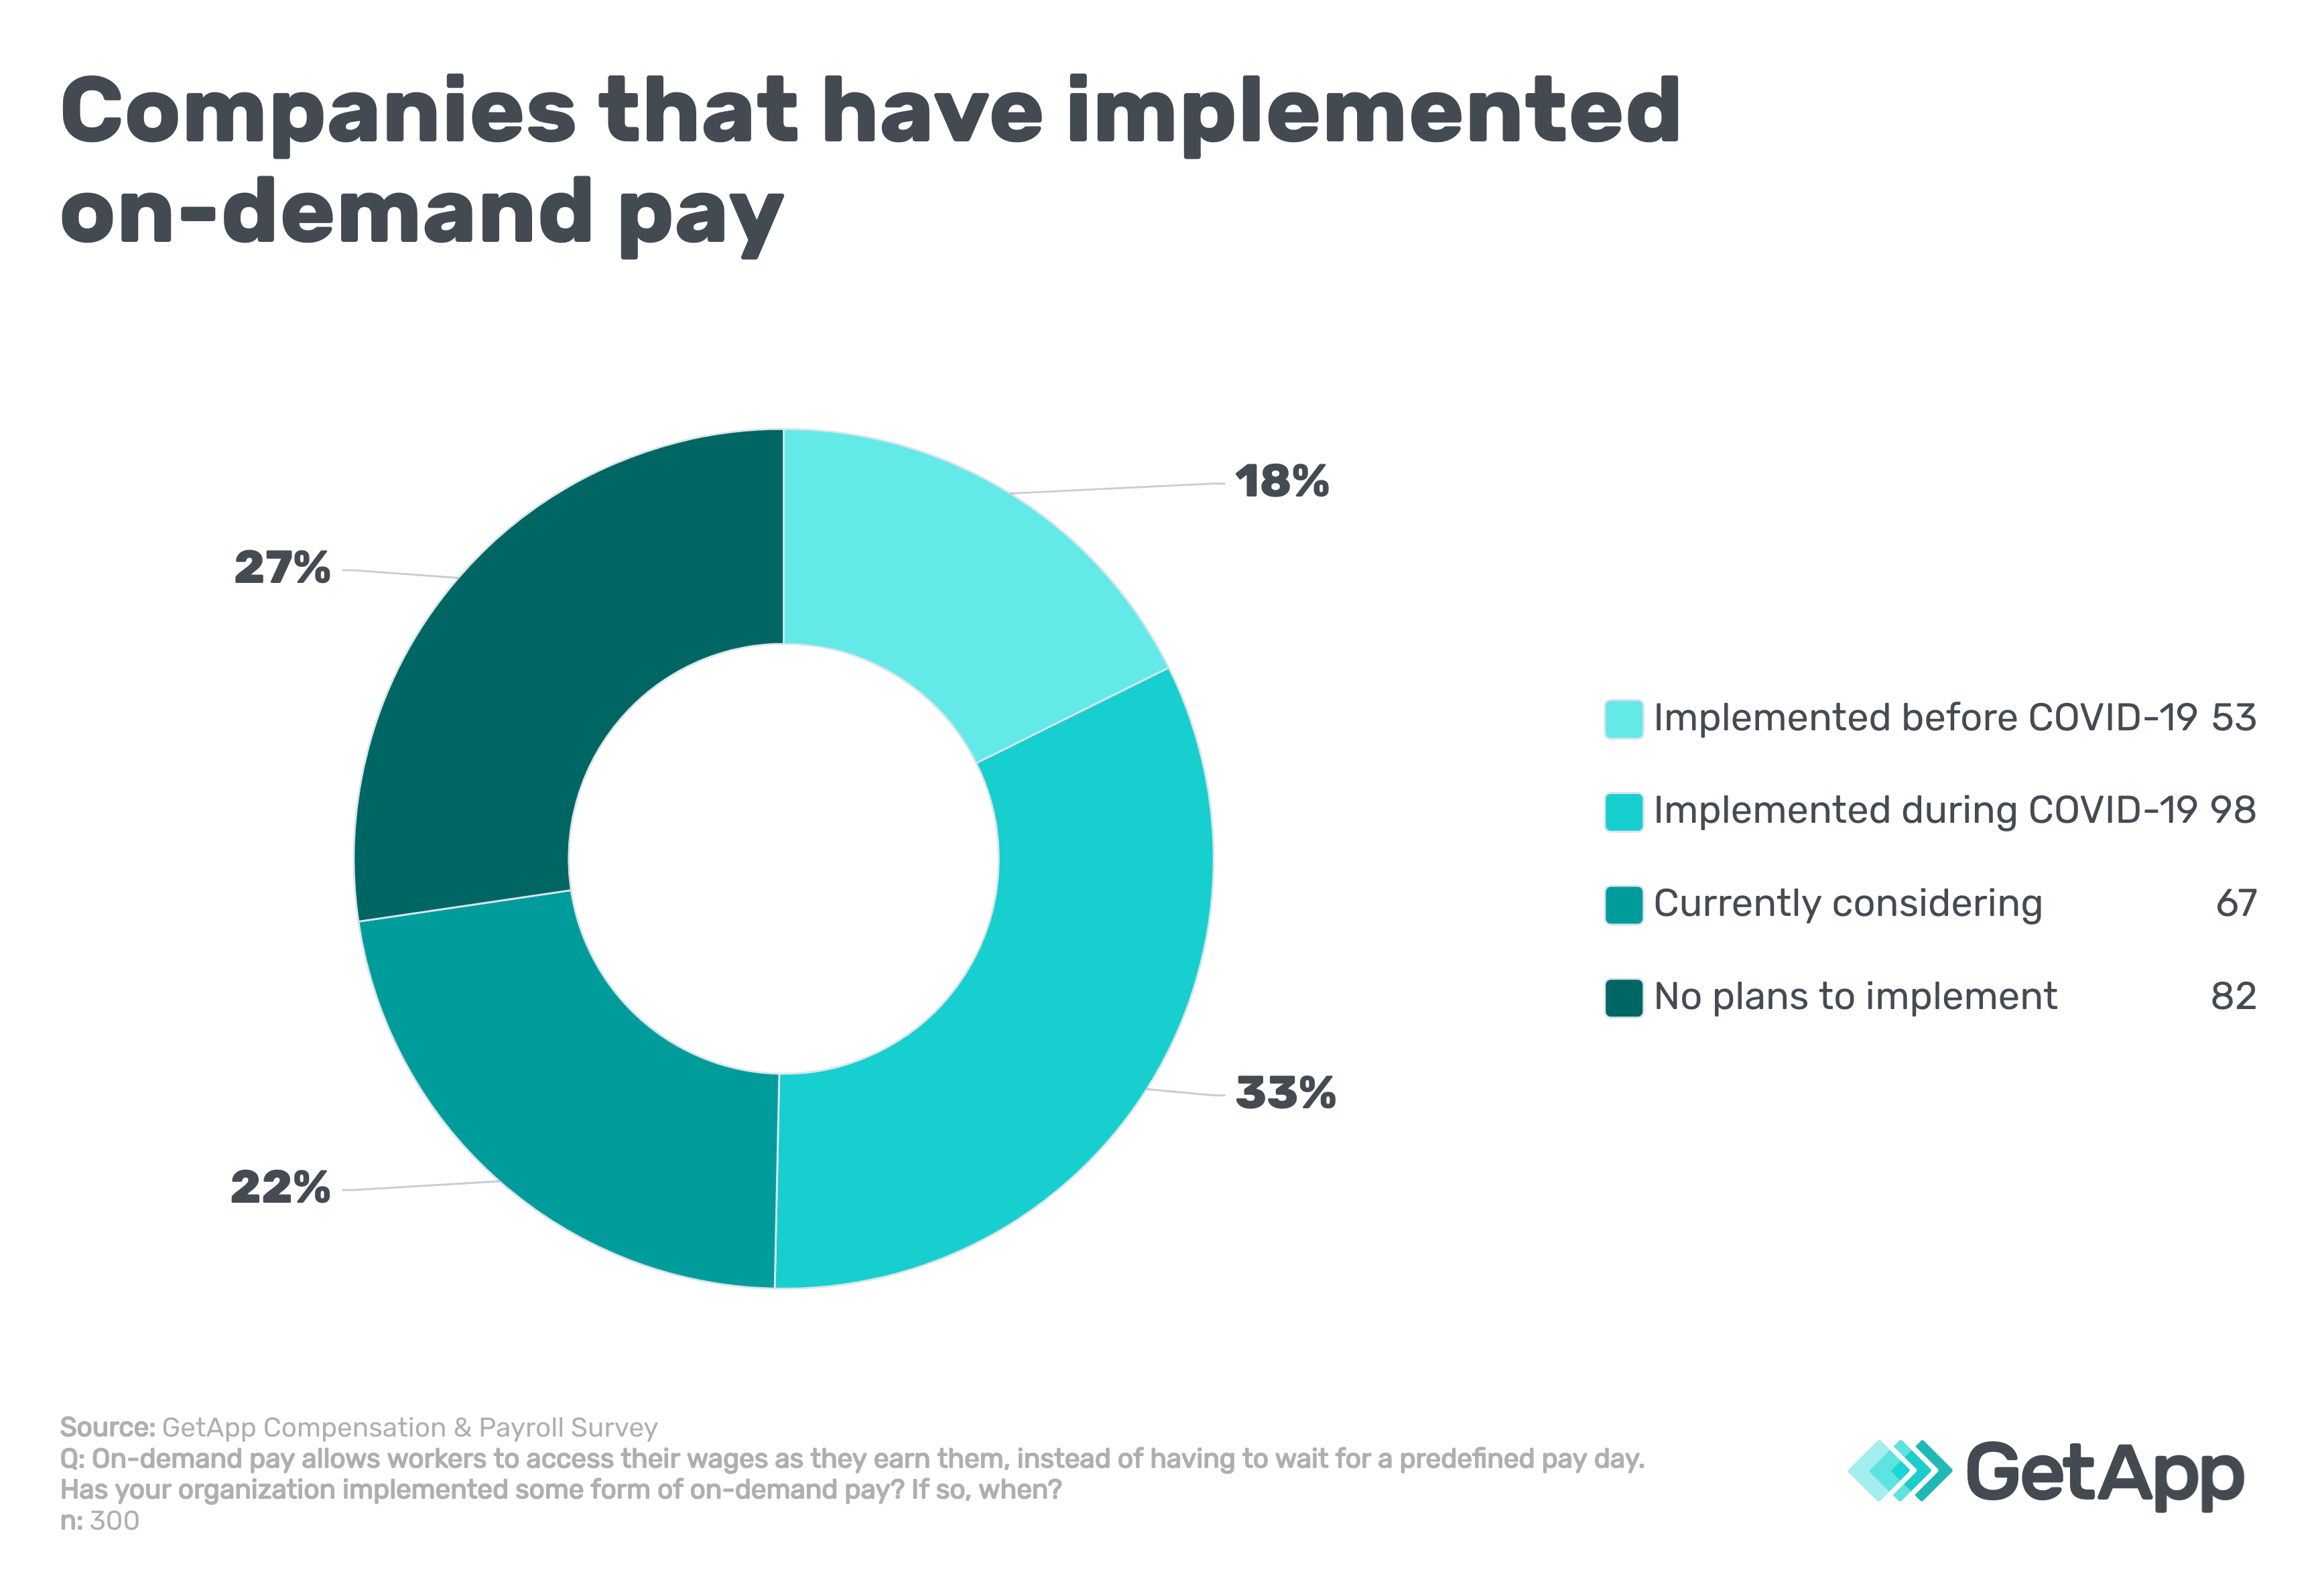 Companies that have implemented on-demand pay